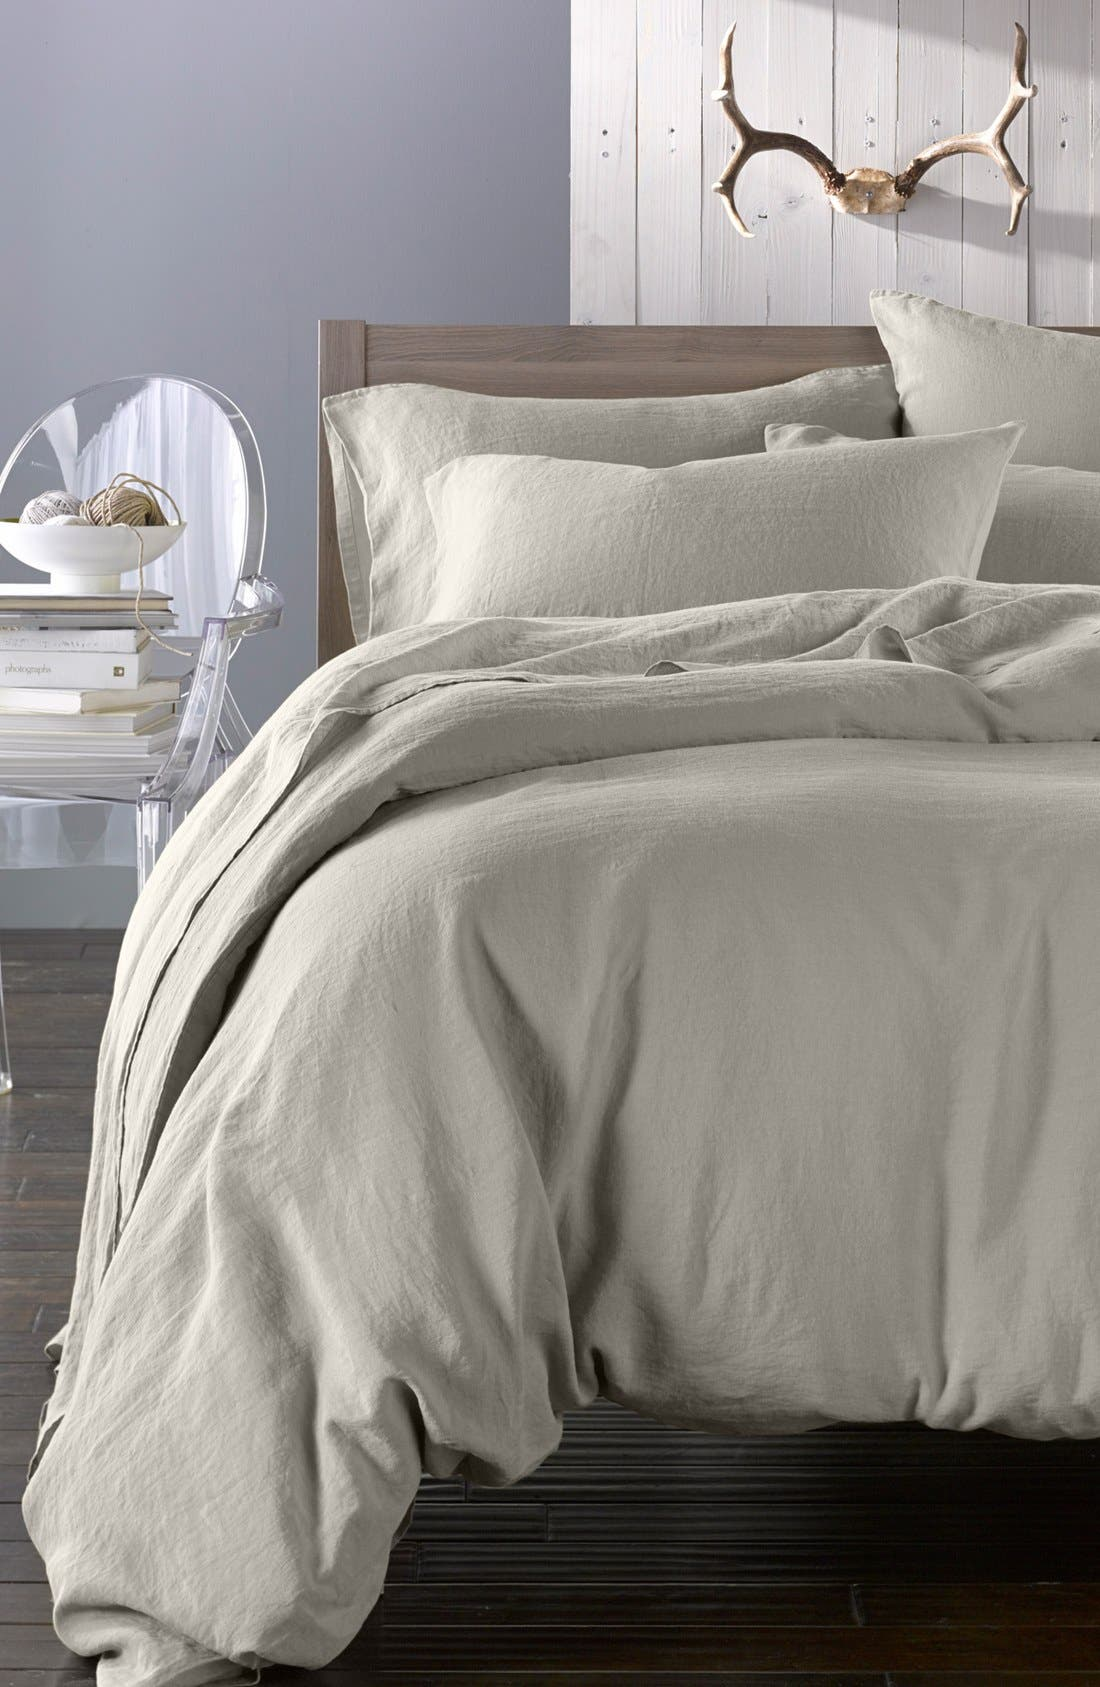 Alternate Image 1 Selected - Merci Washed Linen Queen Size Duvet Cover